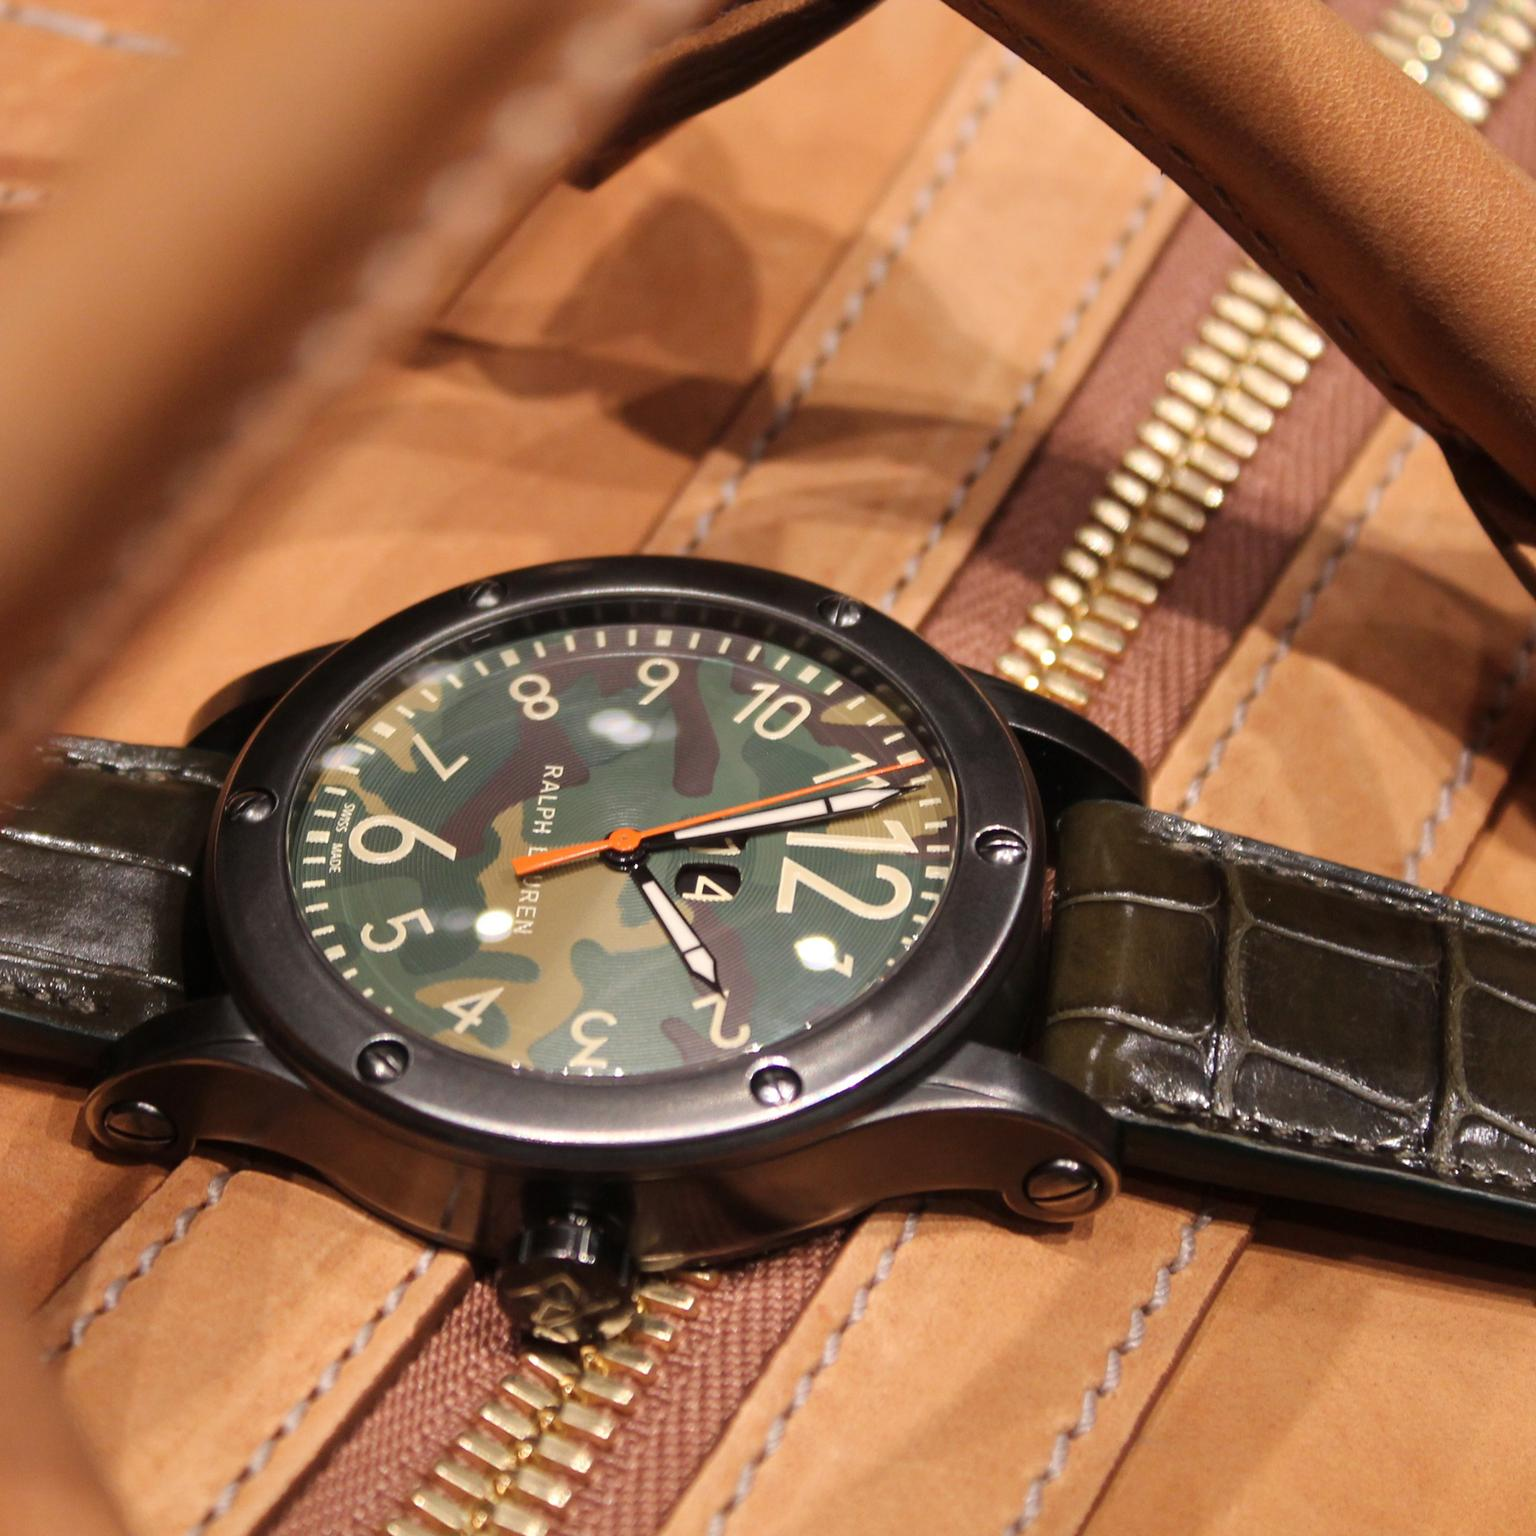 Ralph Lauren RL67 Safari Grand Date watch with camouflage dial